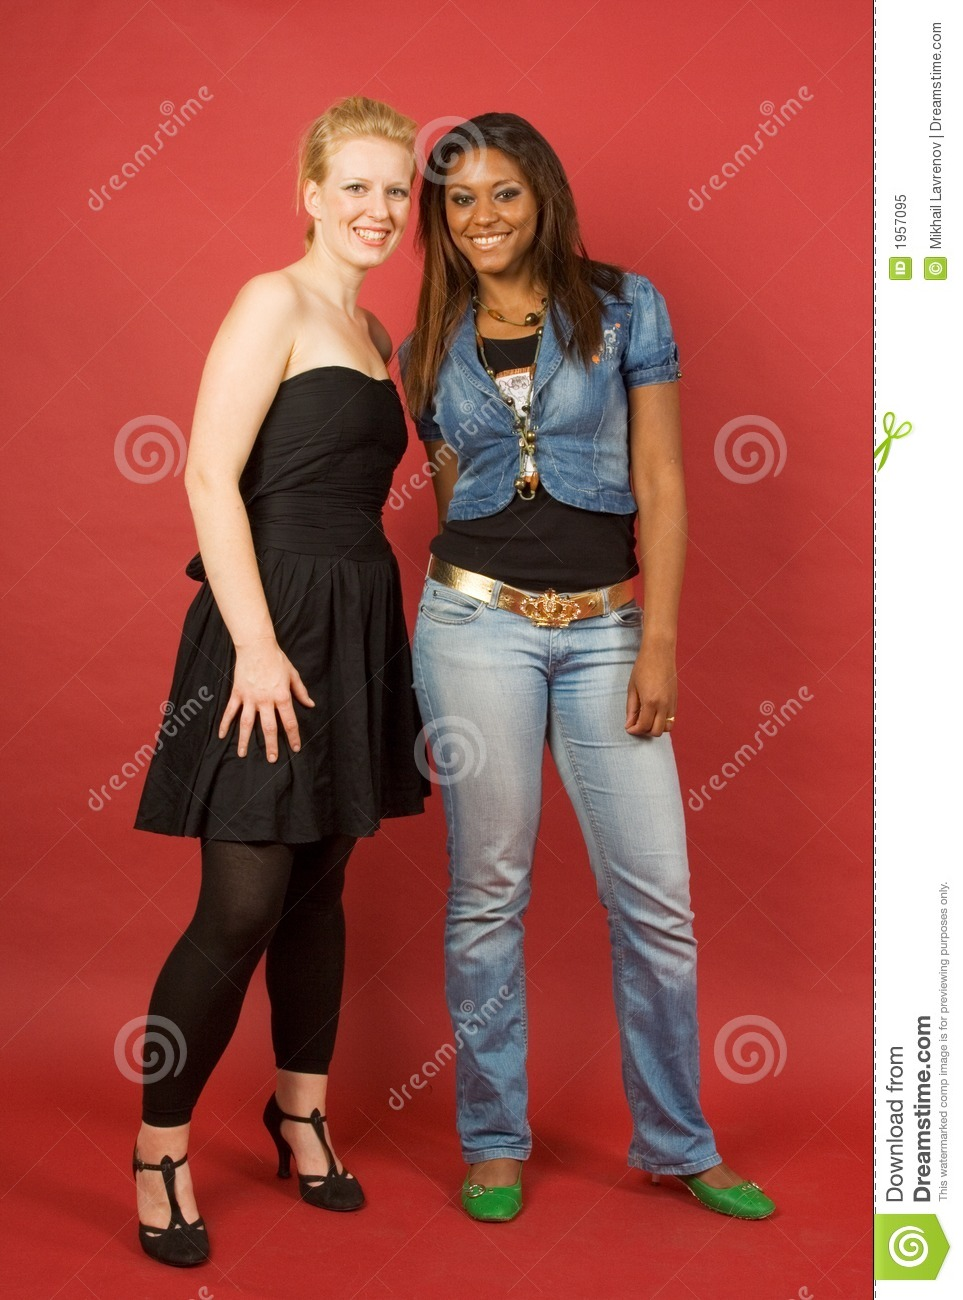 Two smiling girls on red